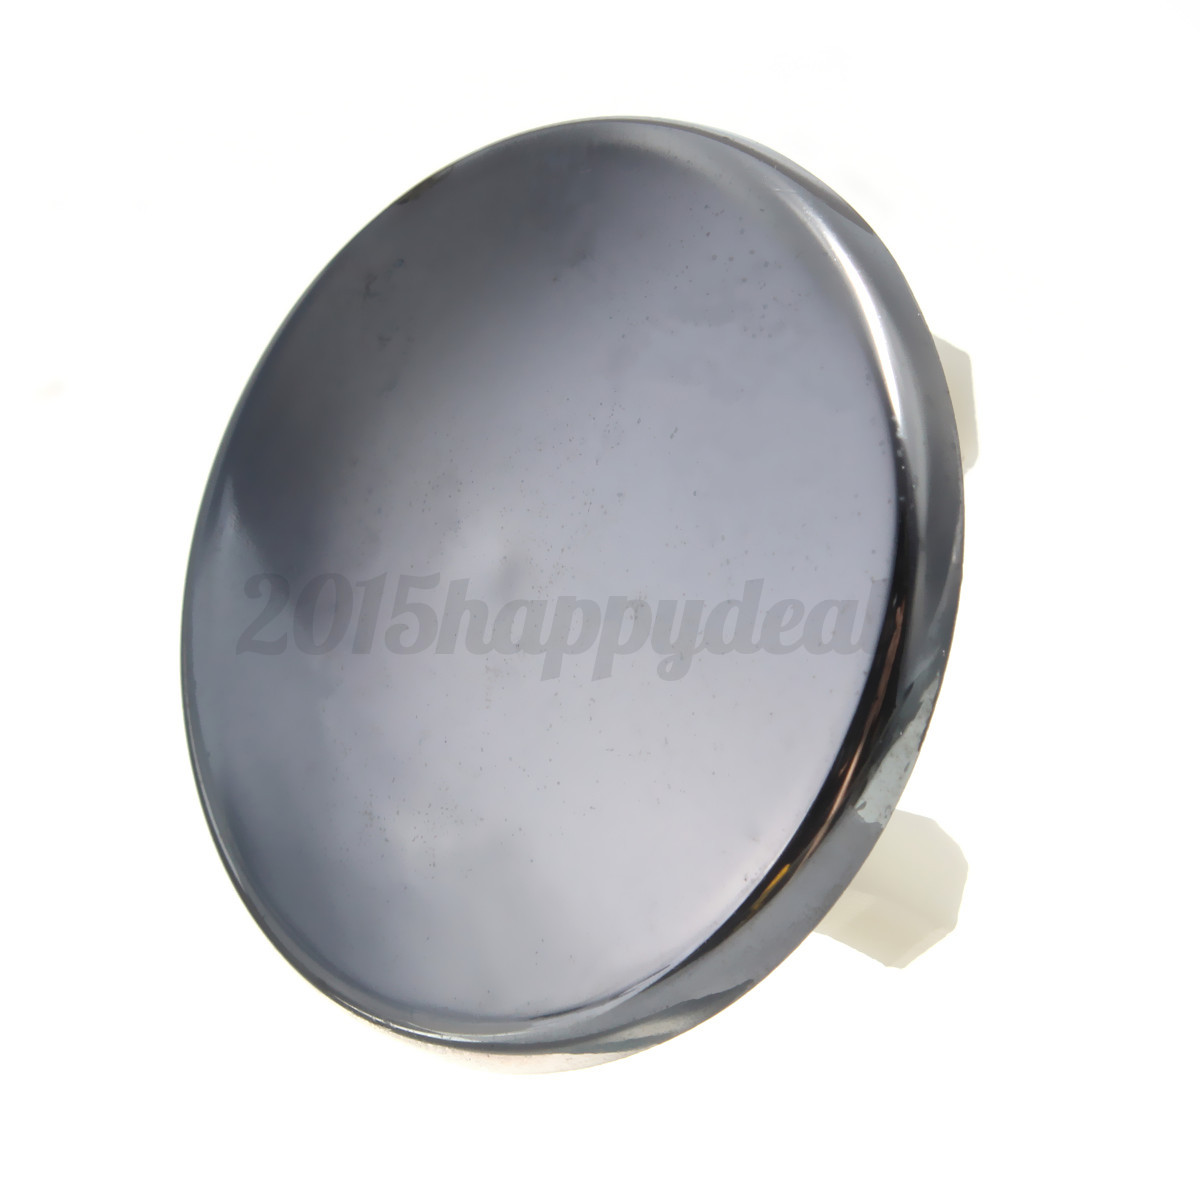 Plastic Basins For Sinks : Details about 4 Styles Plastic Bathroom Basin Sink Overflow Cover Fit ...